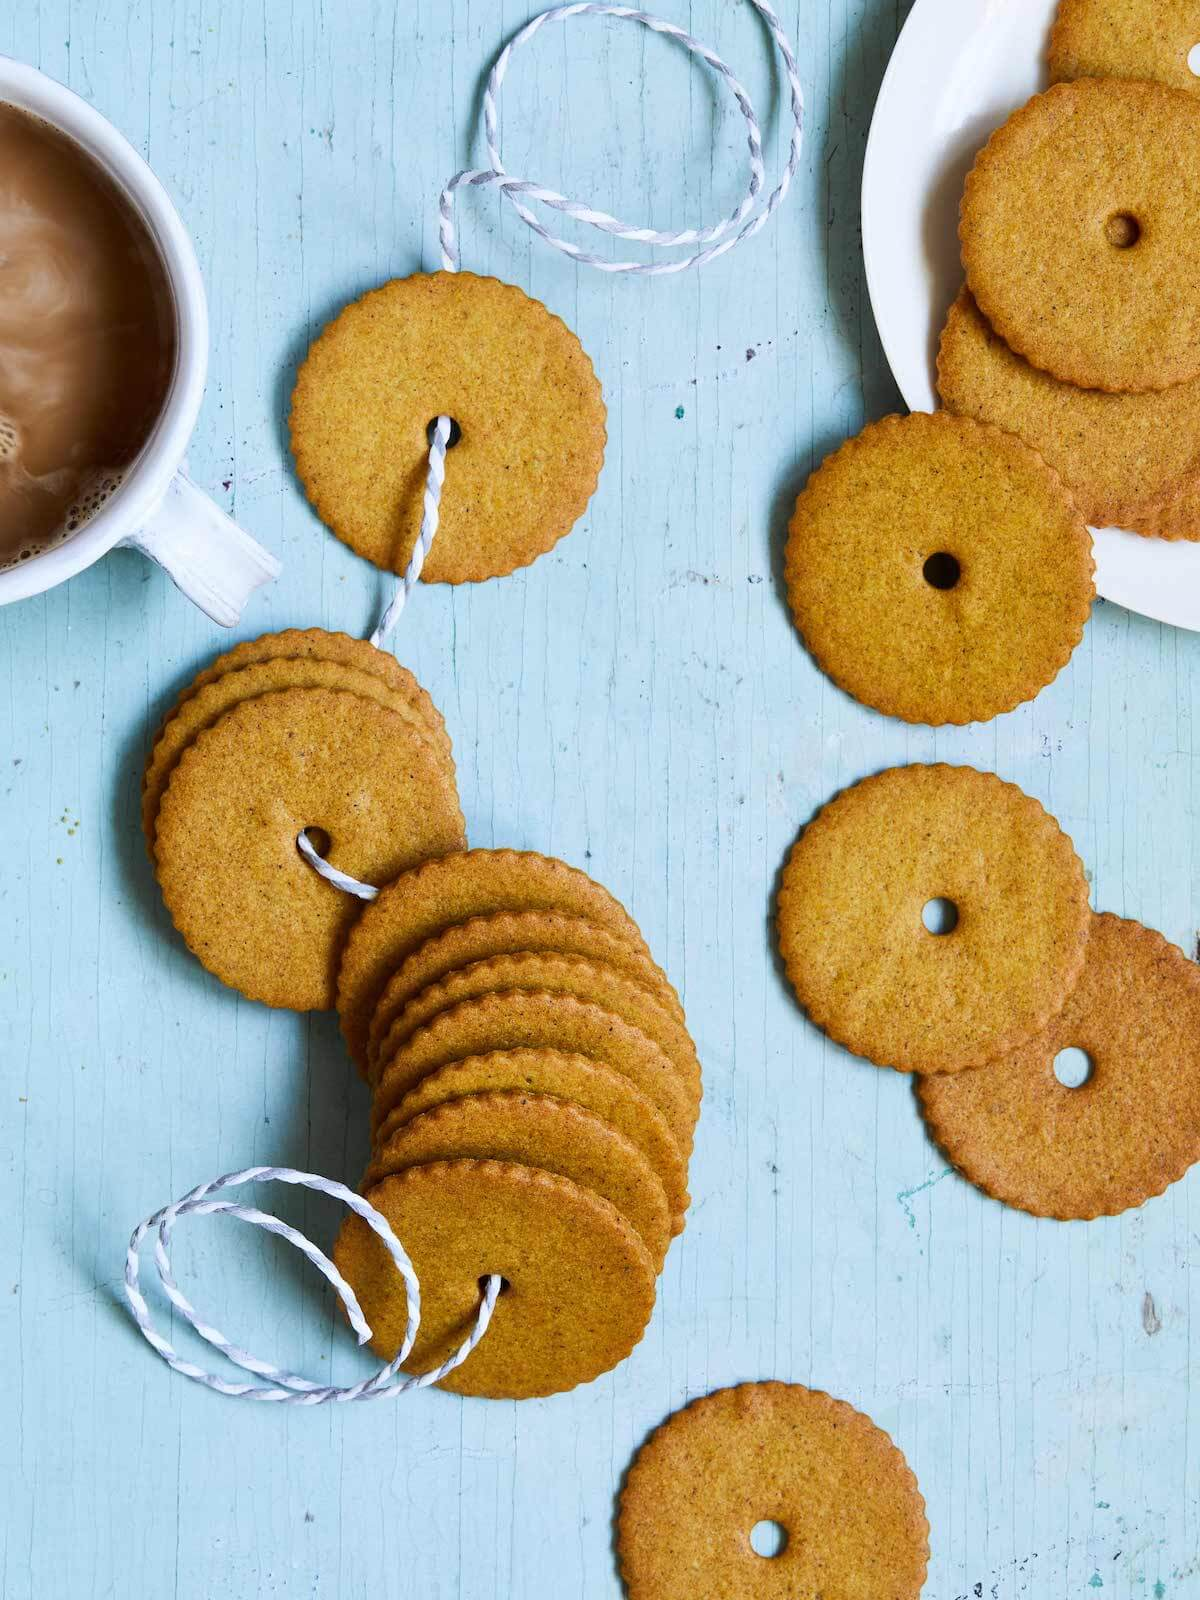 moravian spice cookies tied with a string